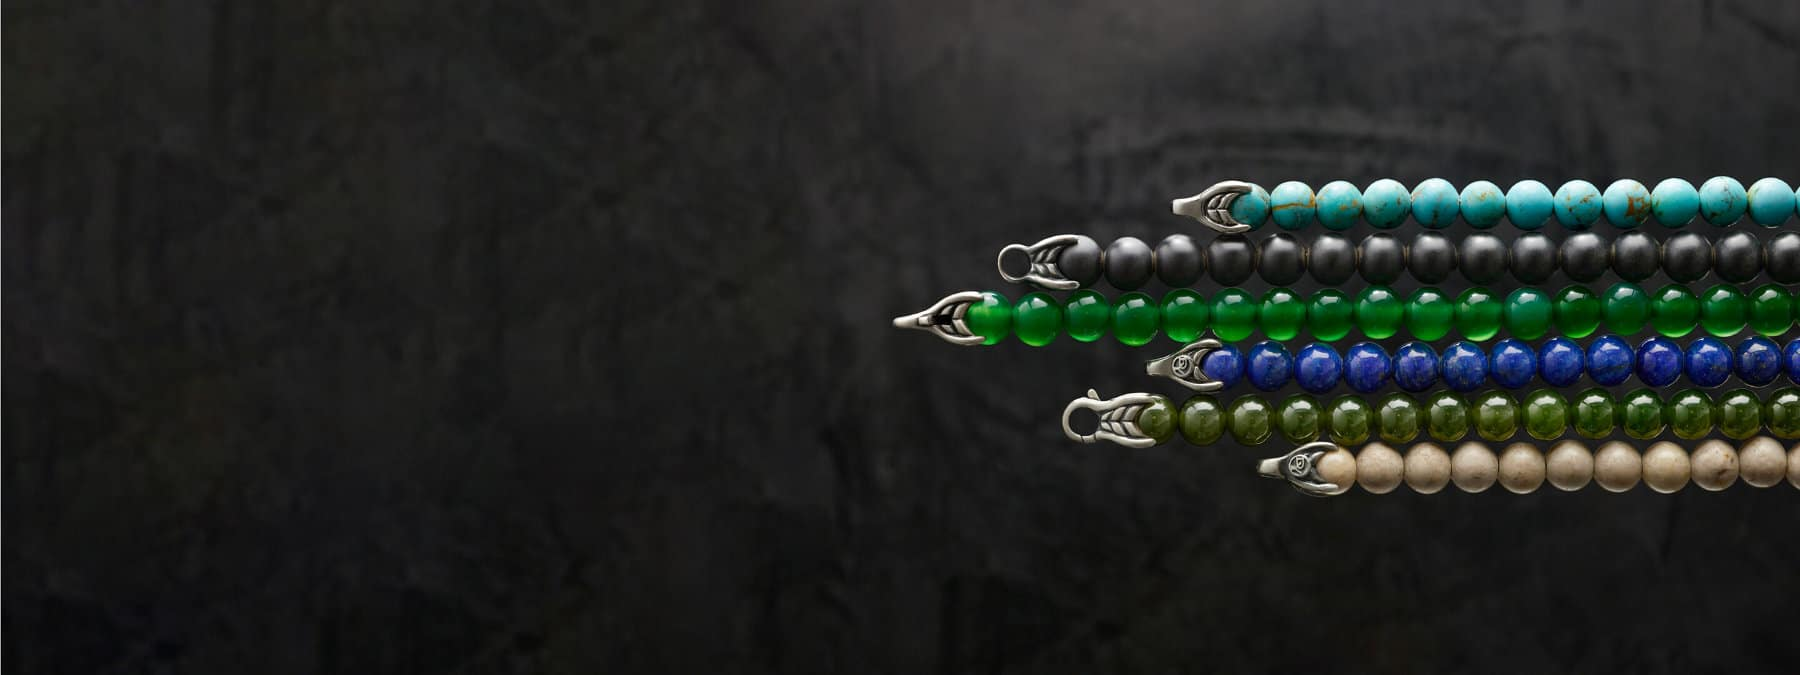 A color photo shows six David Yurman Spiritual Beads bracelets placed atop a black background. The jewelry is crafted from various colored gemstones and sterling silver.